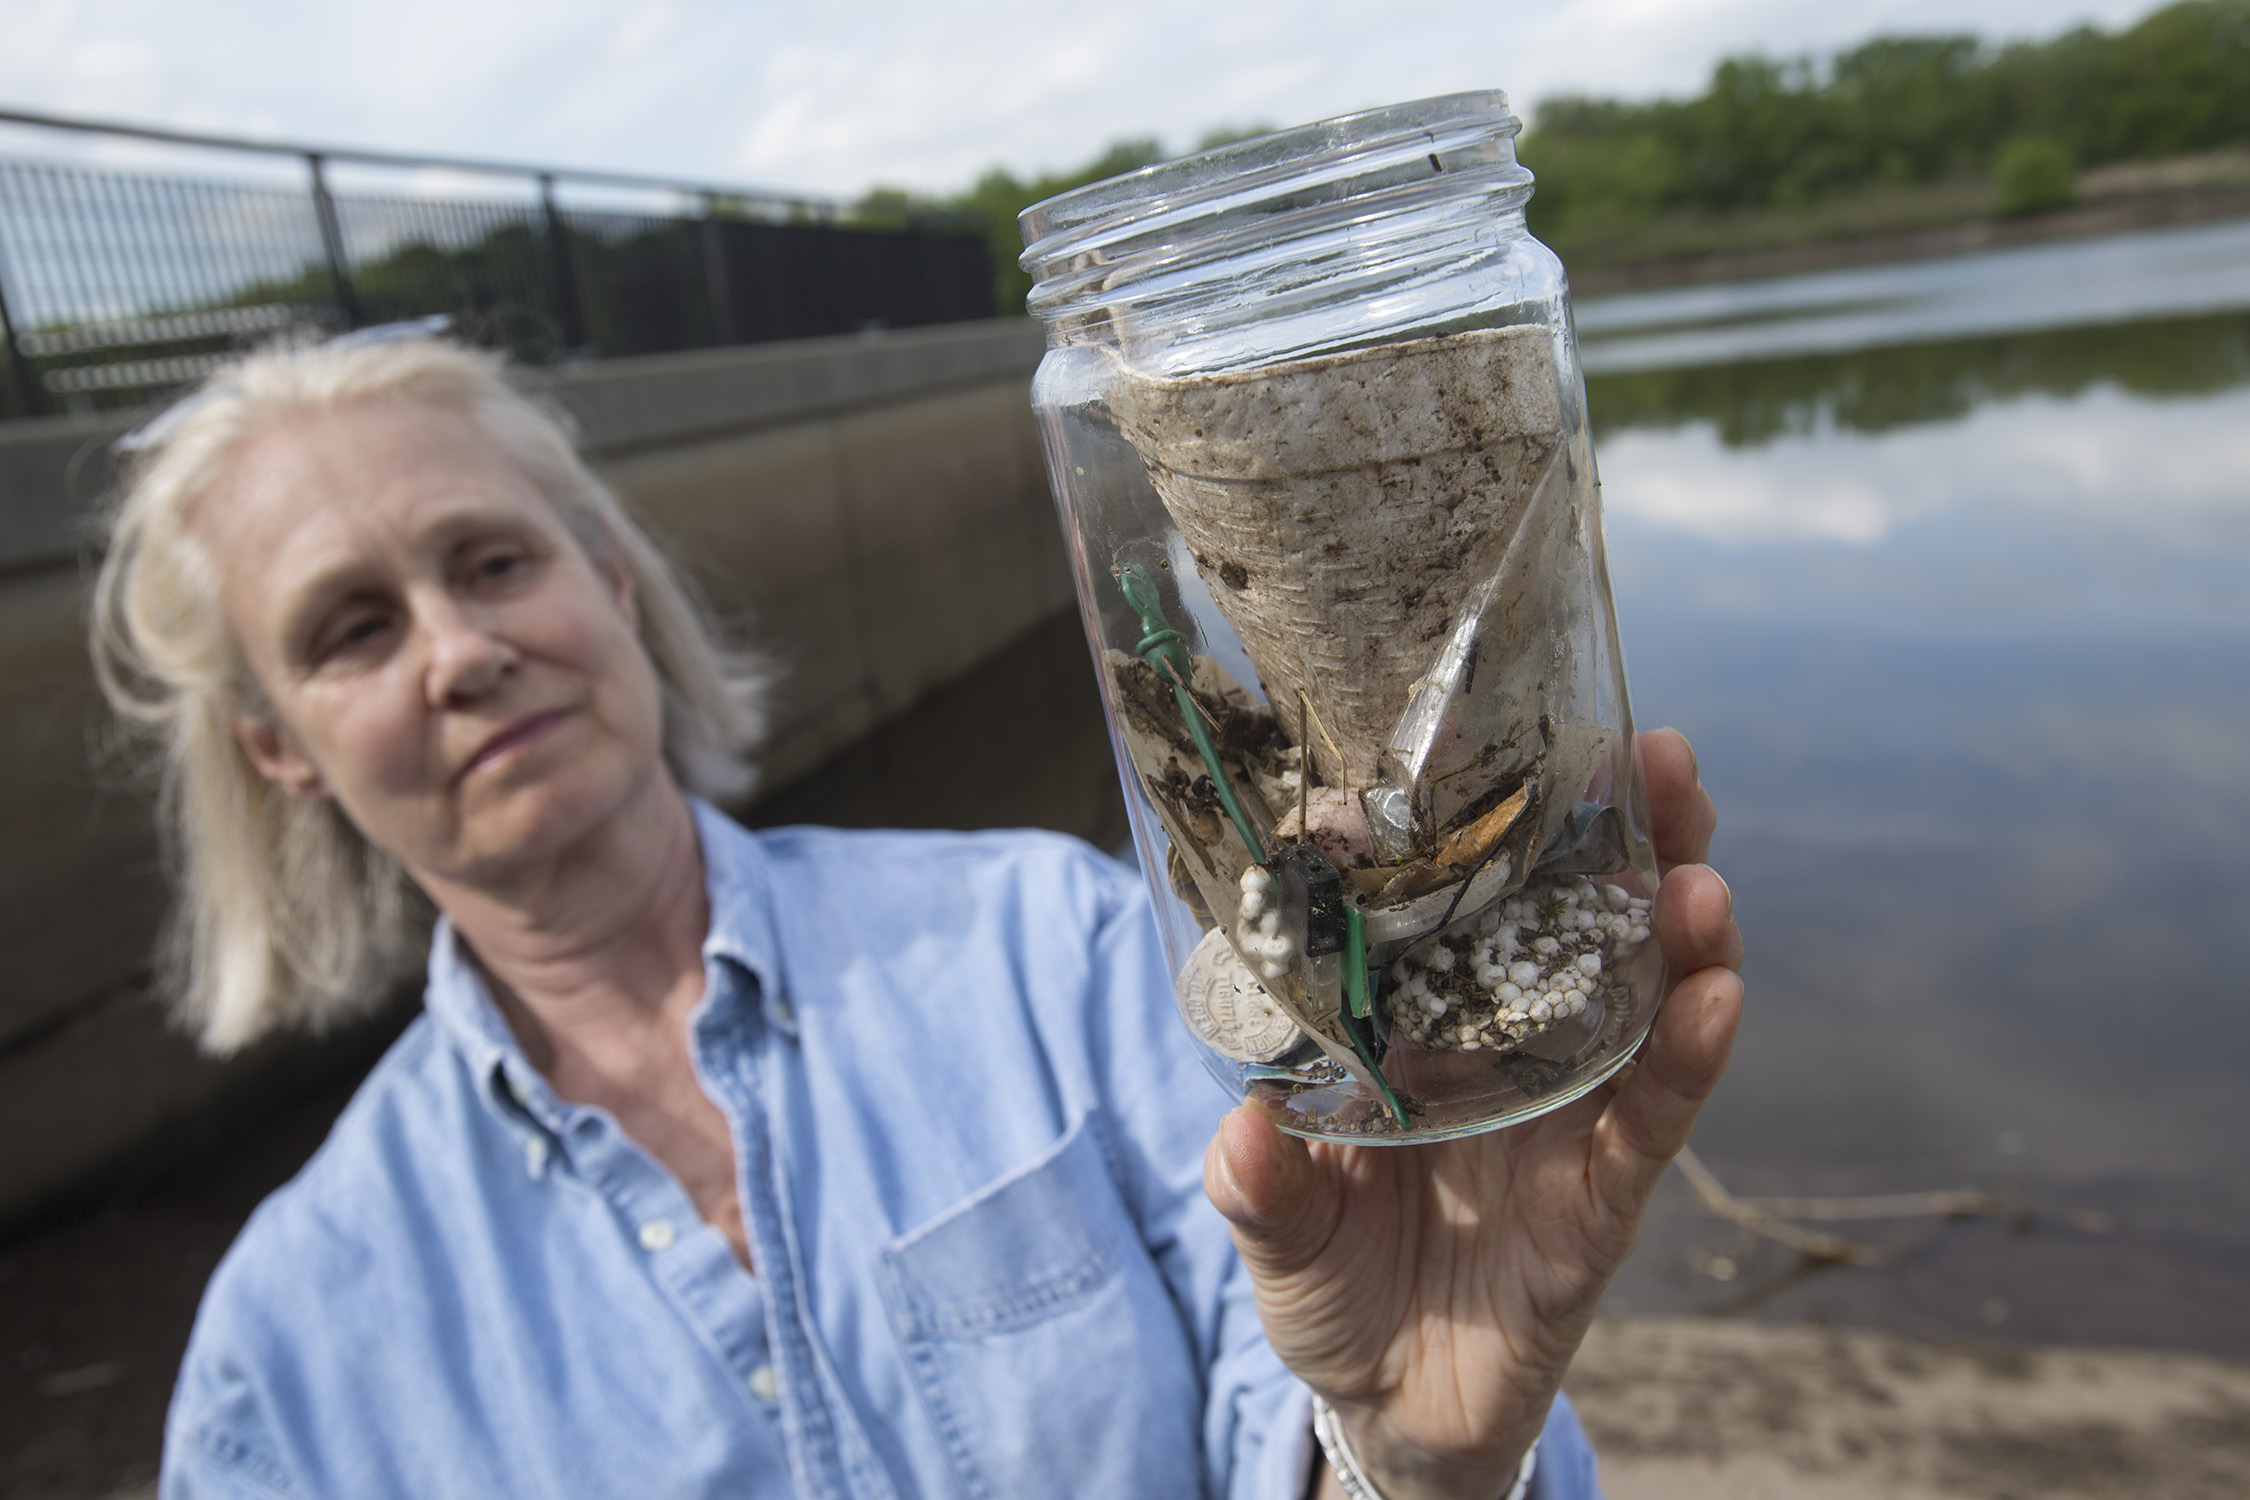 Beth Ravit, co-director of the Rutgers Center for Urban Environmental Sustainability, holds a jar filled with plastics collected along the Raritan River in New Brunswick, New Jersey. Photo: Nick Romanenko/Rutgers University